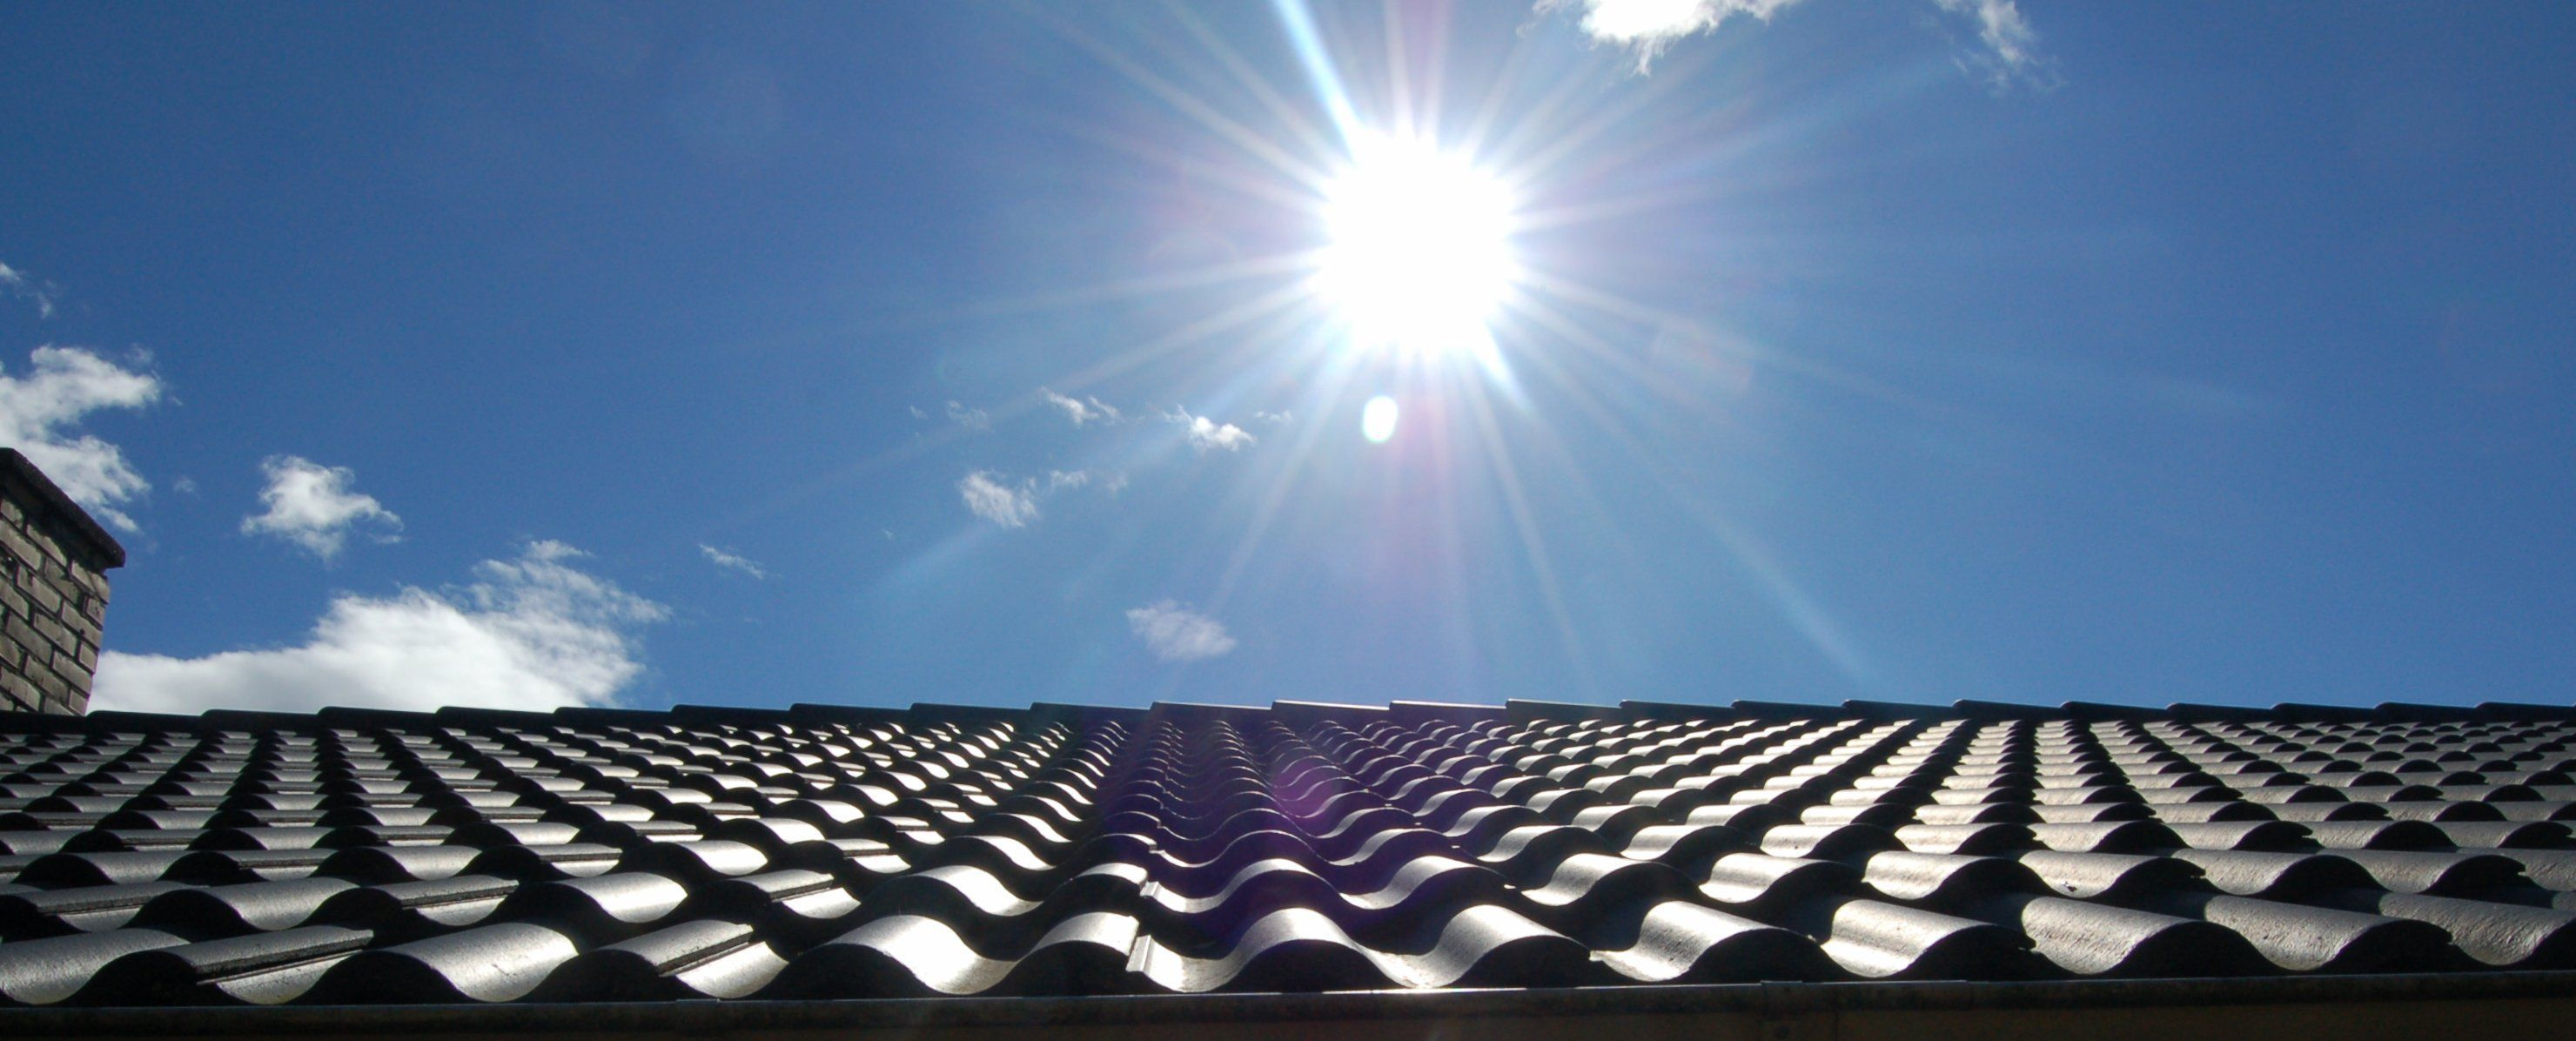 Looking For A New Roof Here Are The Tips This Or That Questions Types Of Work